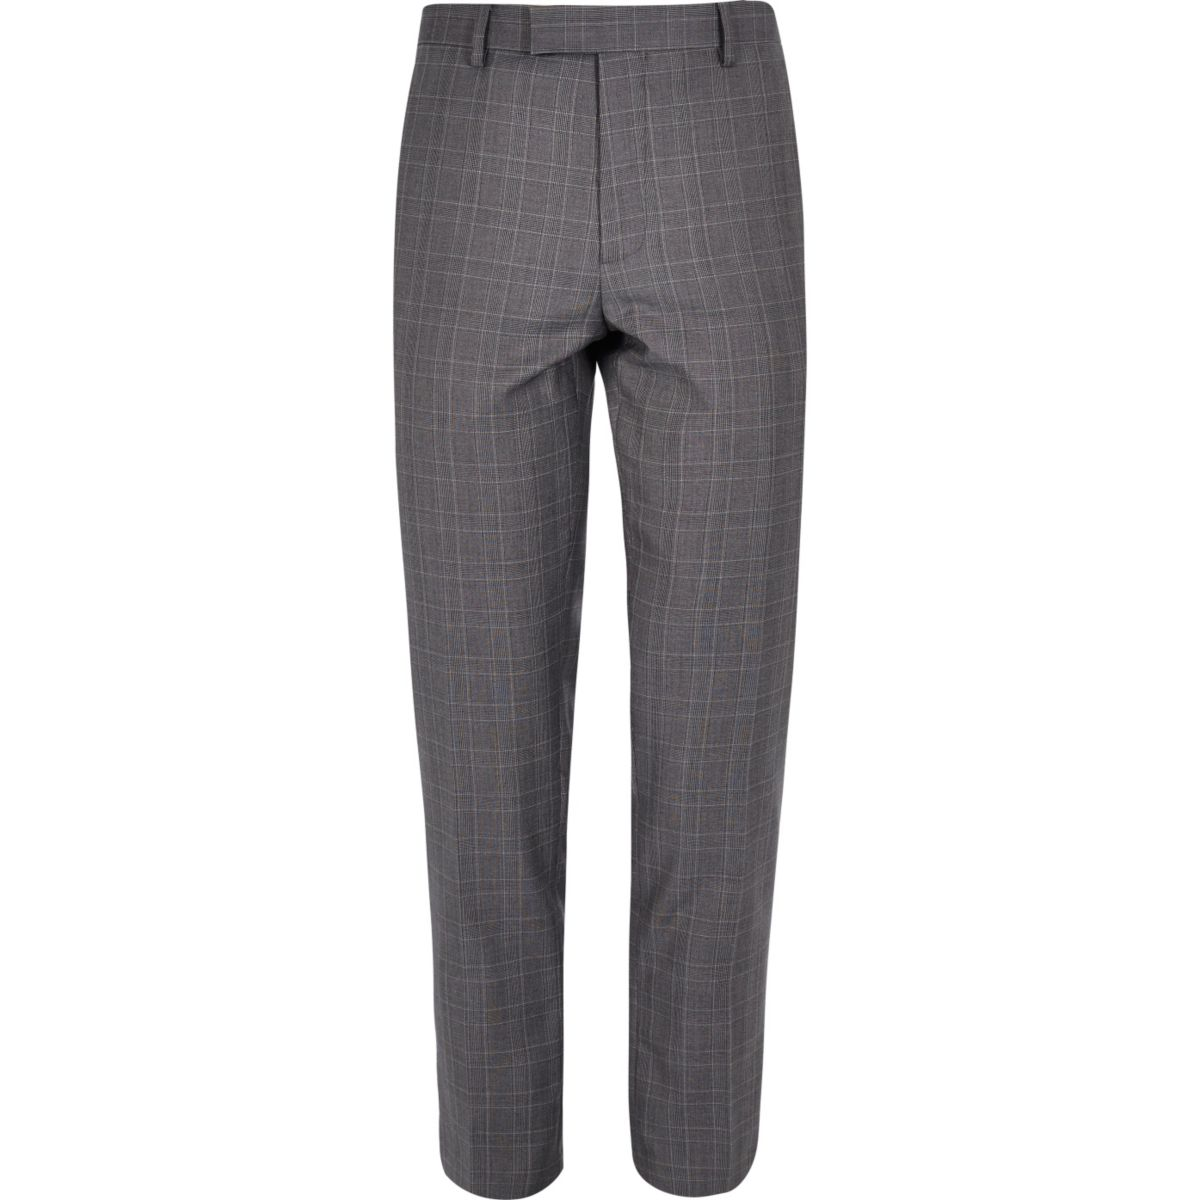 Blue checked skinny suit pants